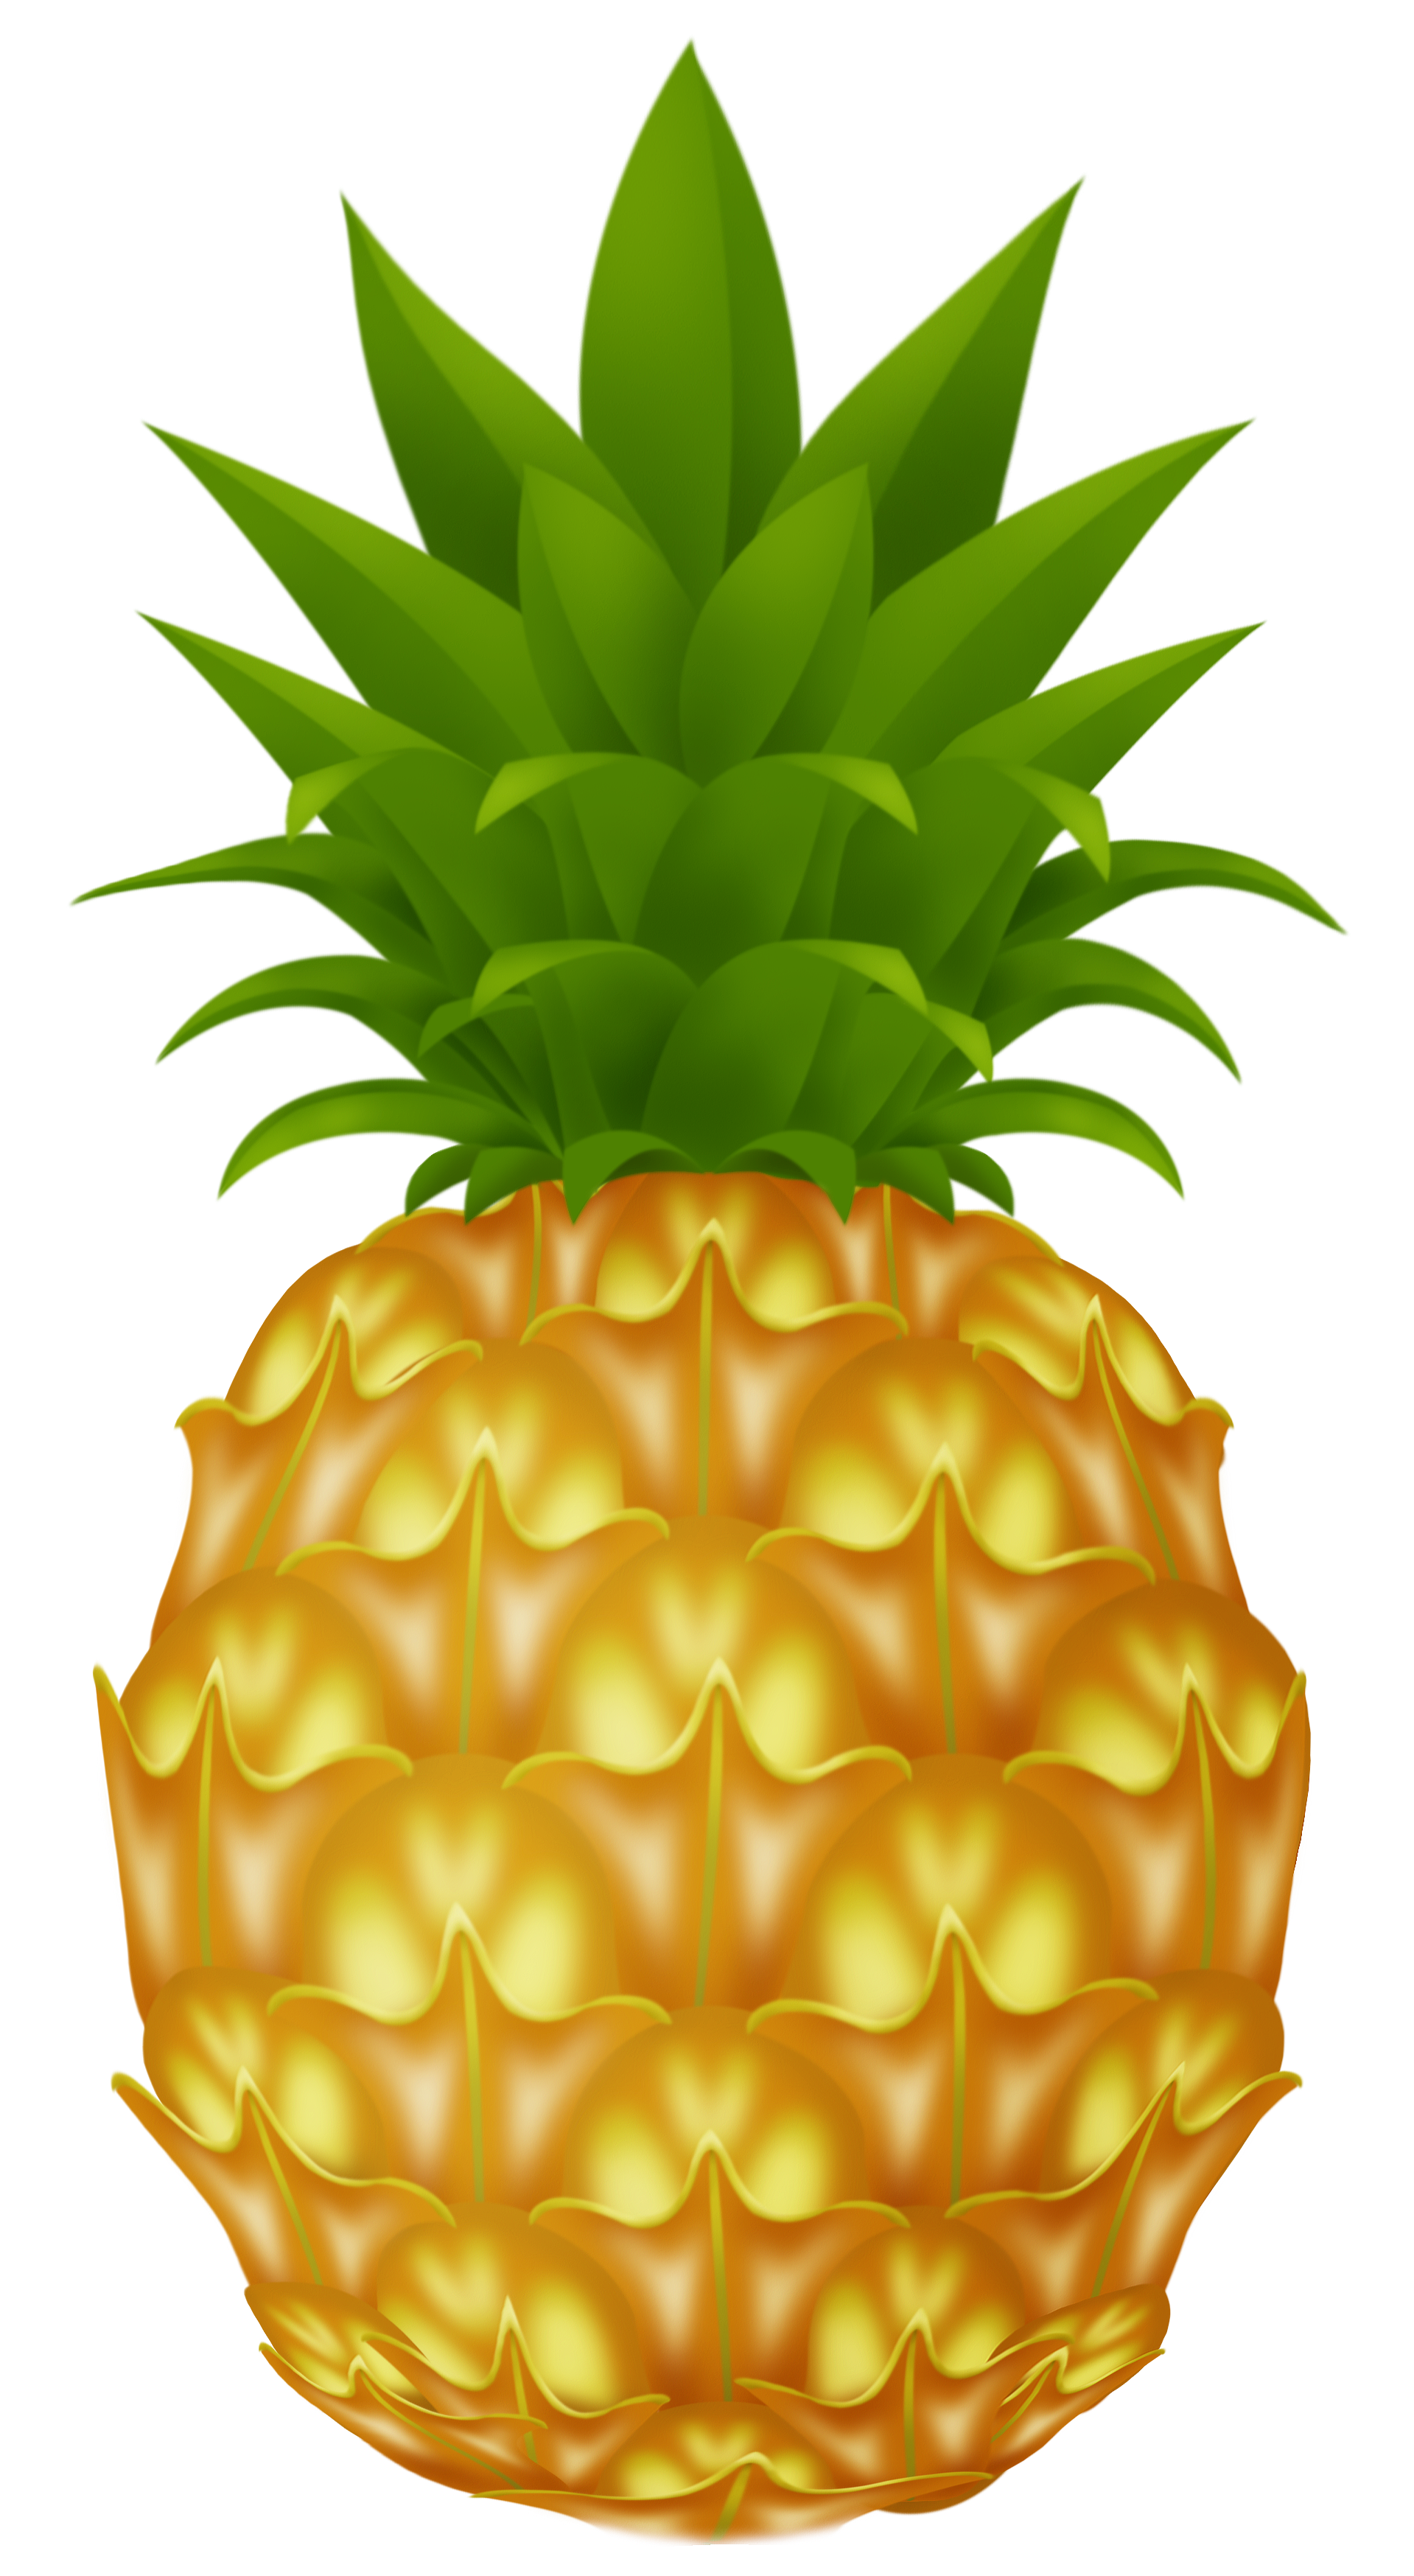 Free images . Pineapple clipart printable